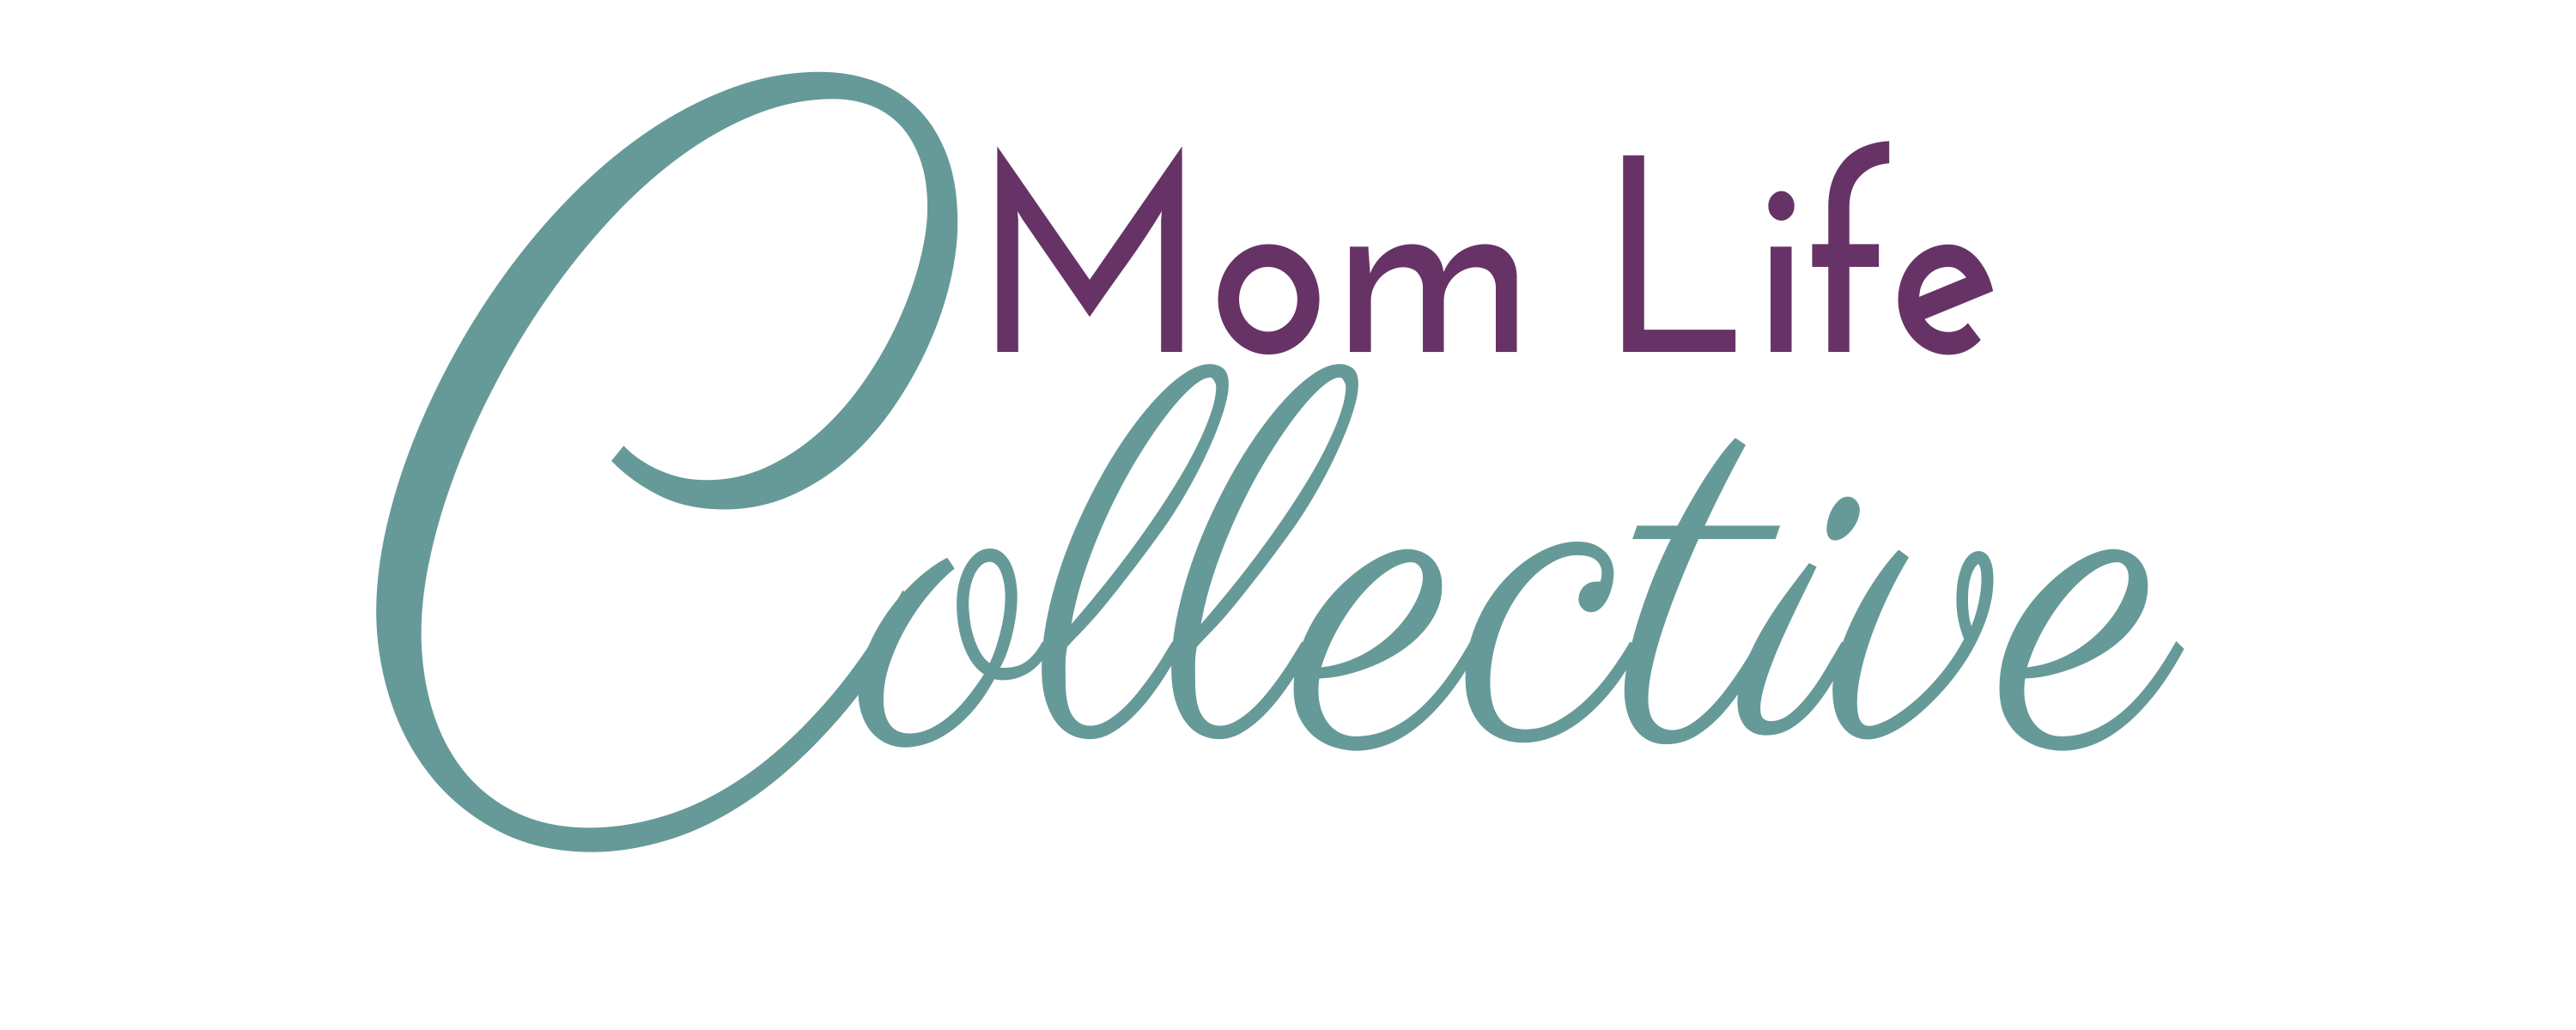 Mom life png. Home collective